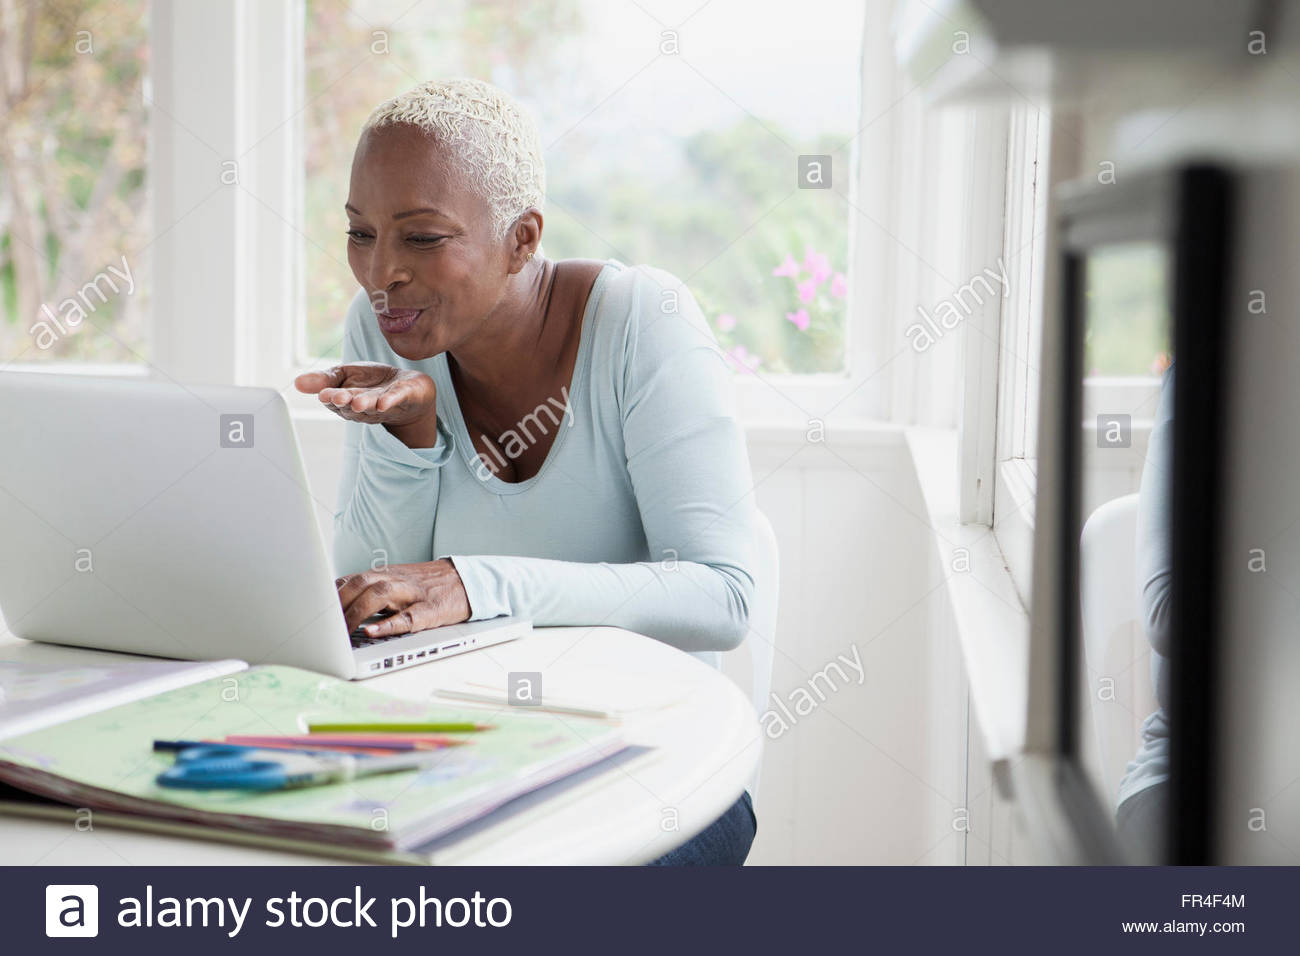 middle aged woman blowing kisses during online chat - Stock Image